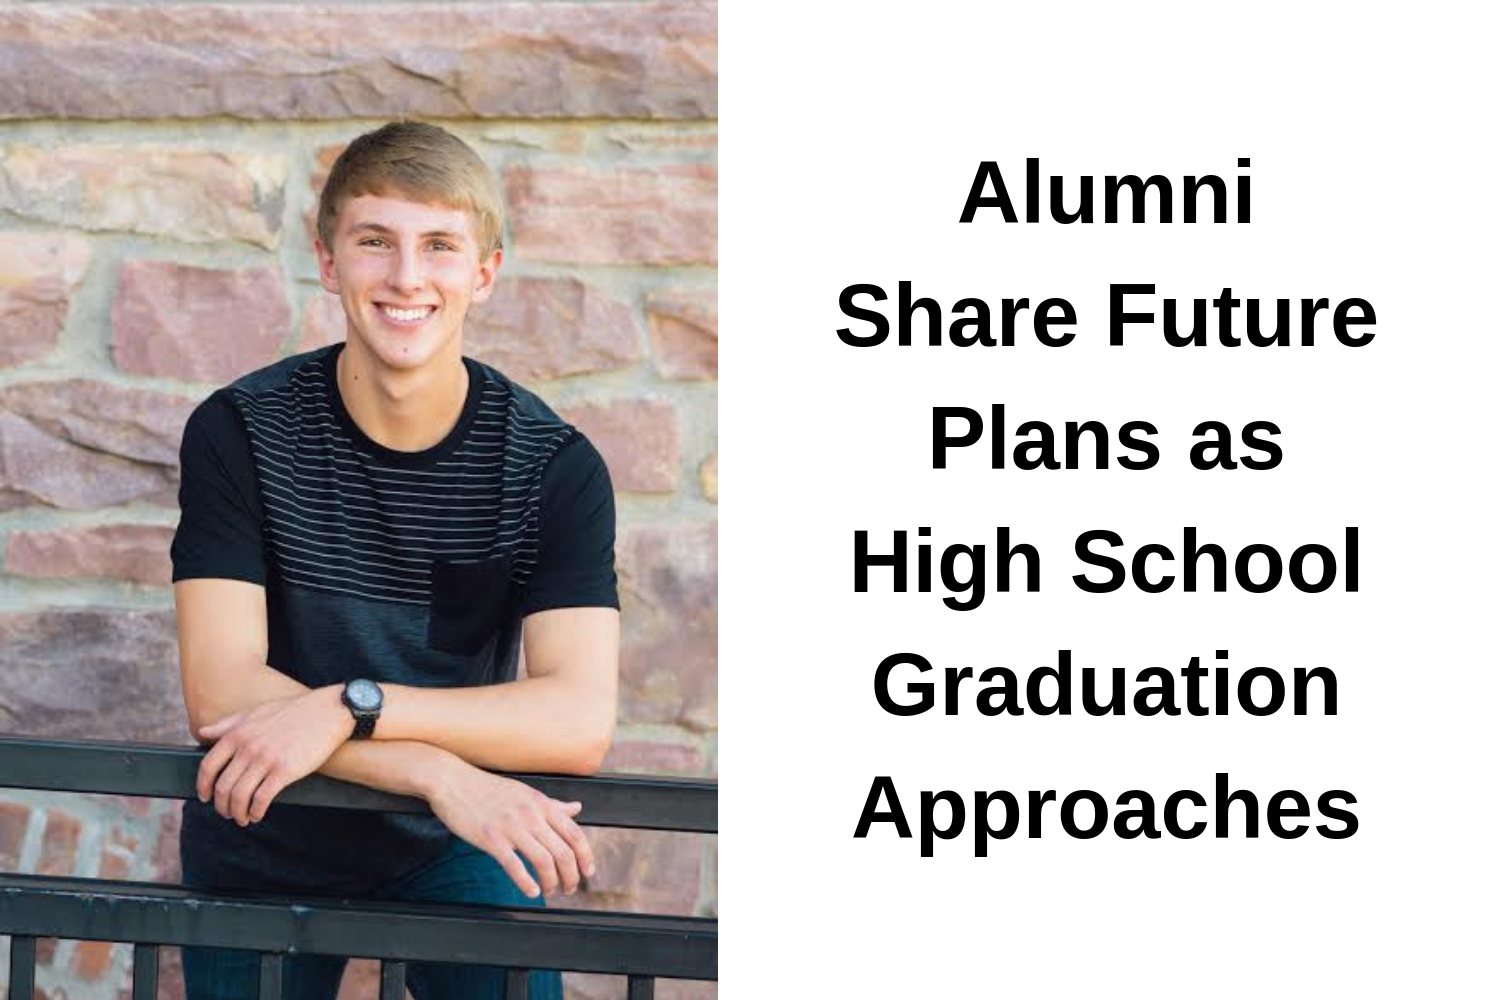 2017-05-17-alumni-share-future-plans.png